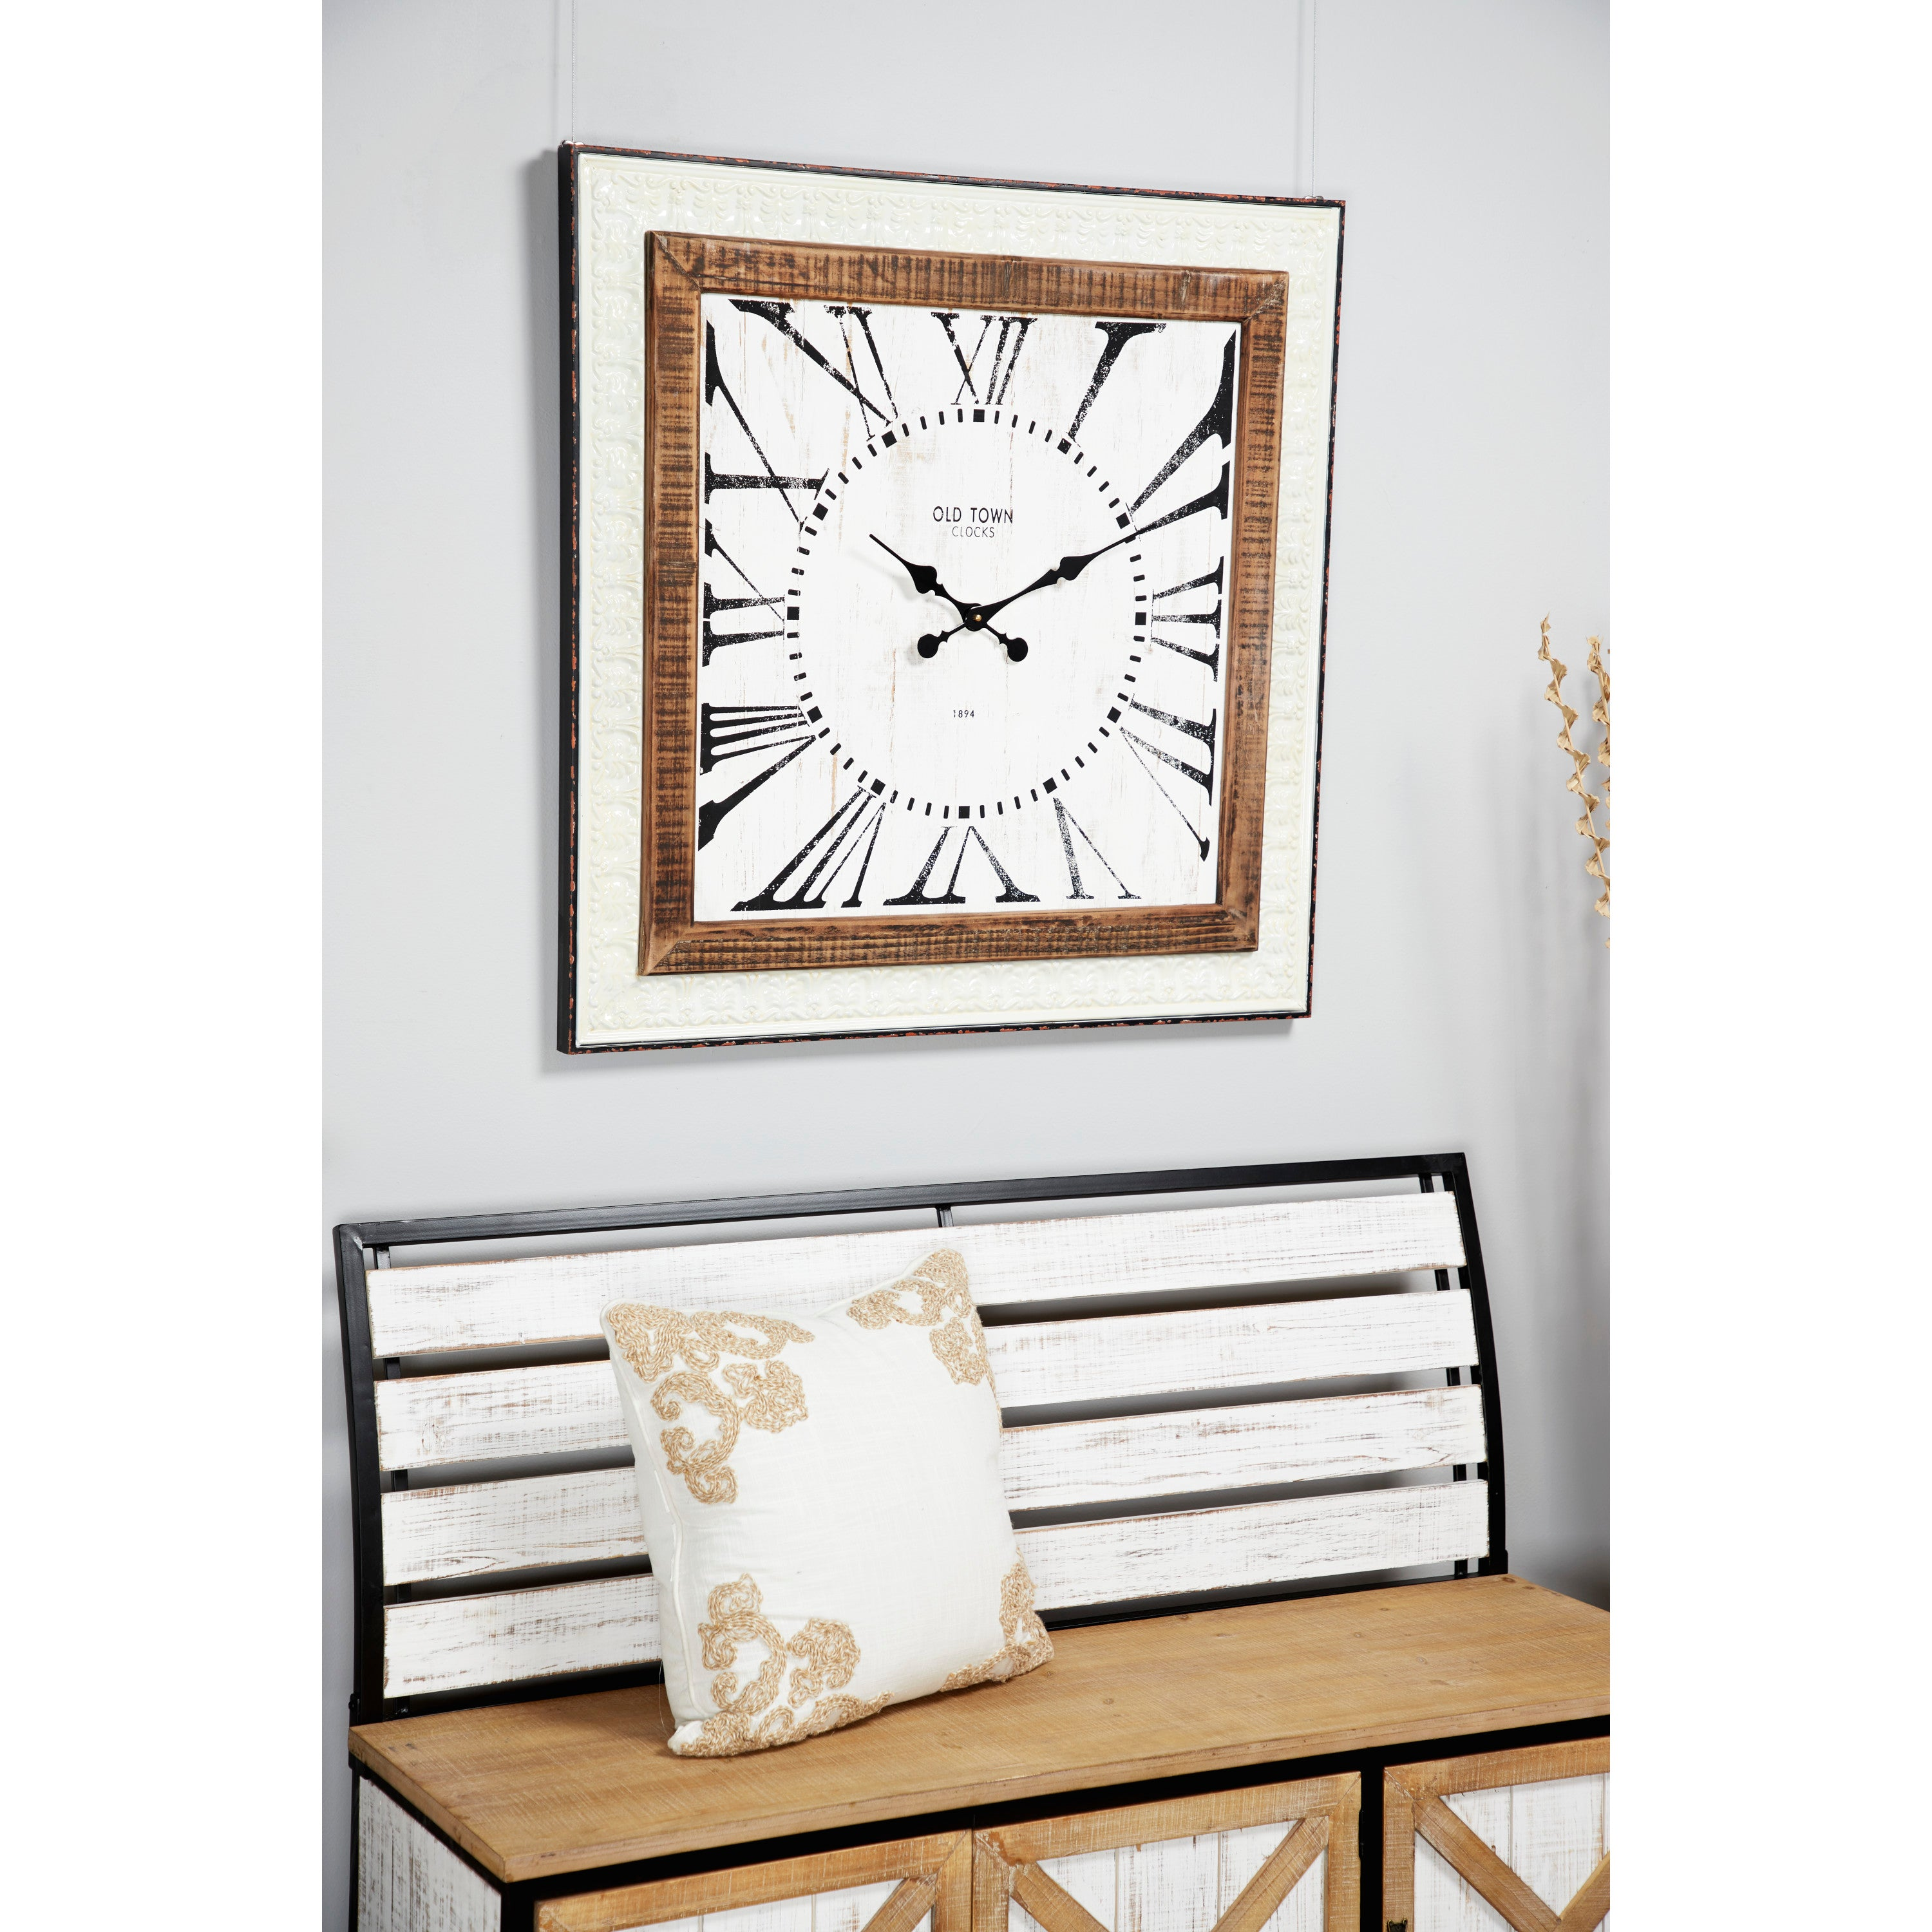 "Decmode 43603 Farmhouse Style Extra Large White Square Wood and Metal Wall Clock with Roman Numerals, 32""x 32"" - FLJ CORPORATIONS"